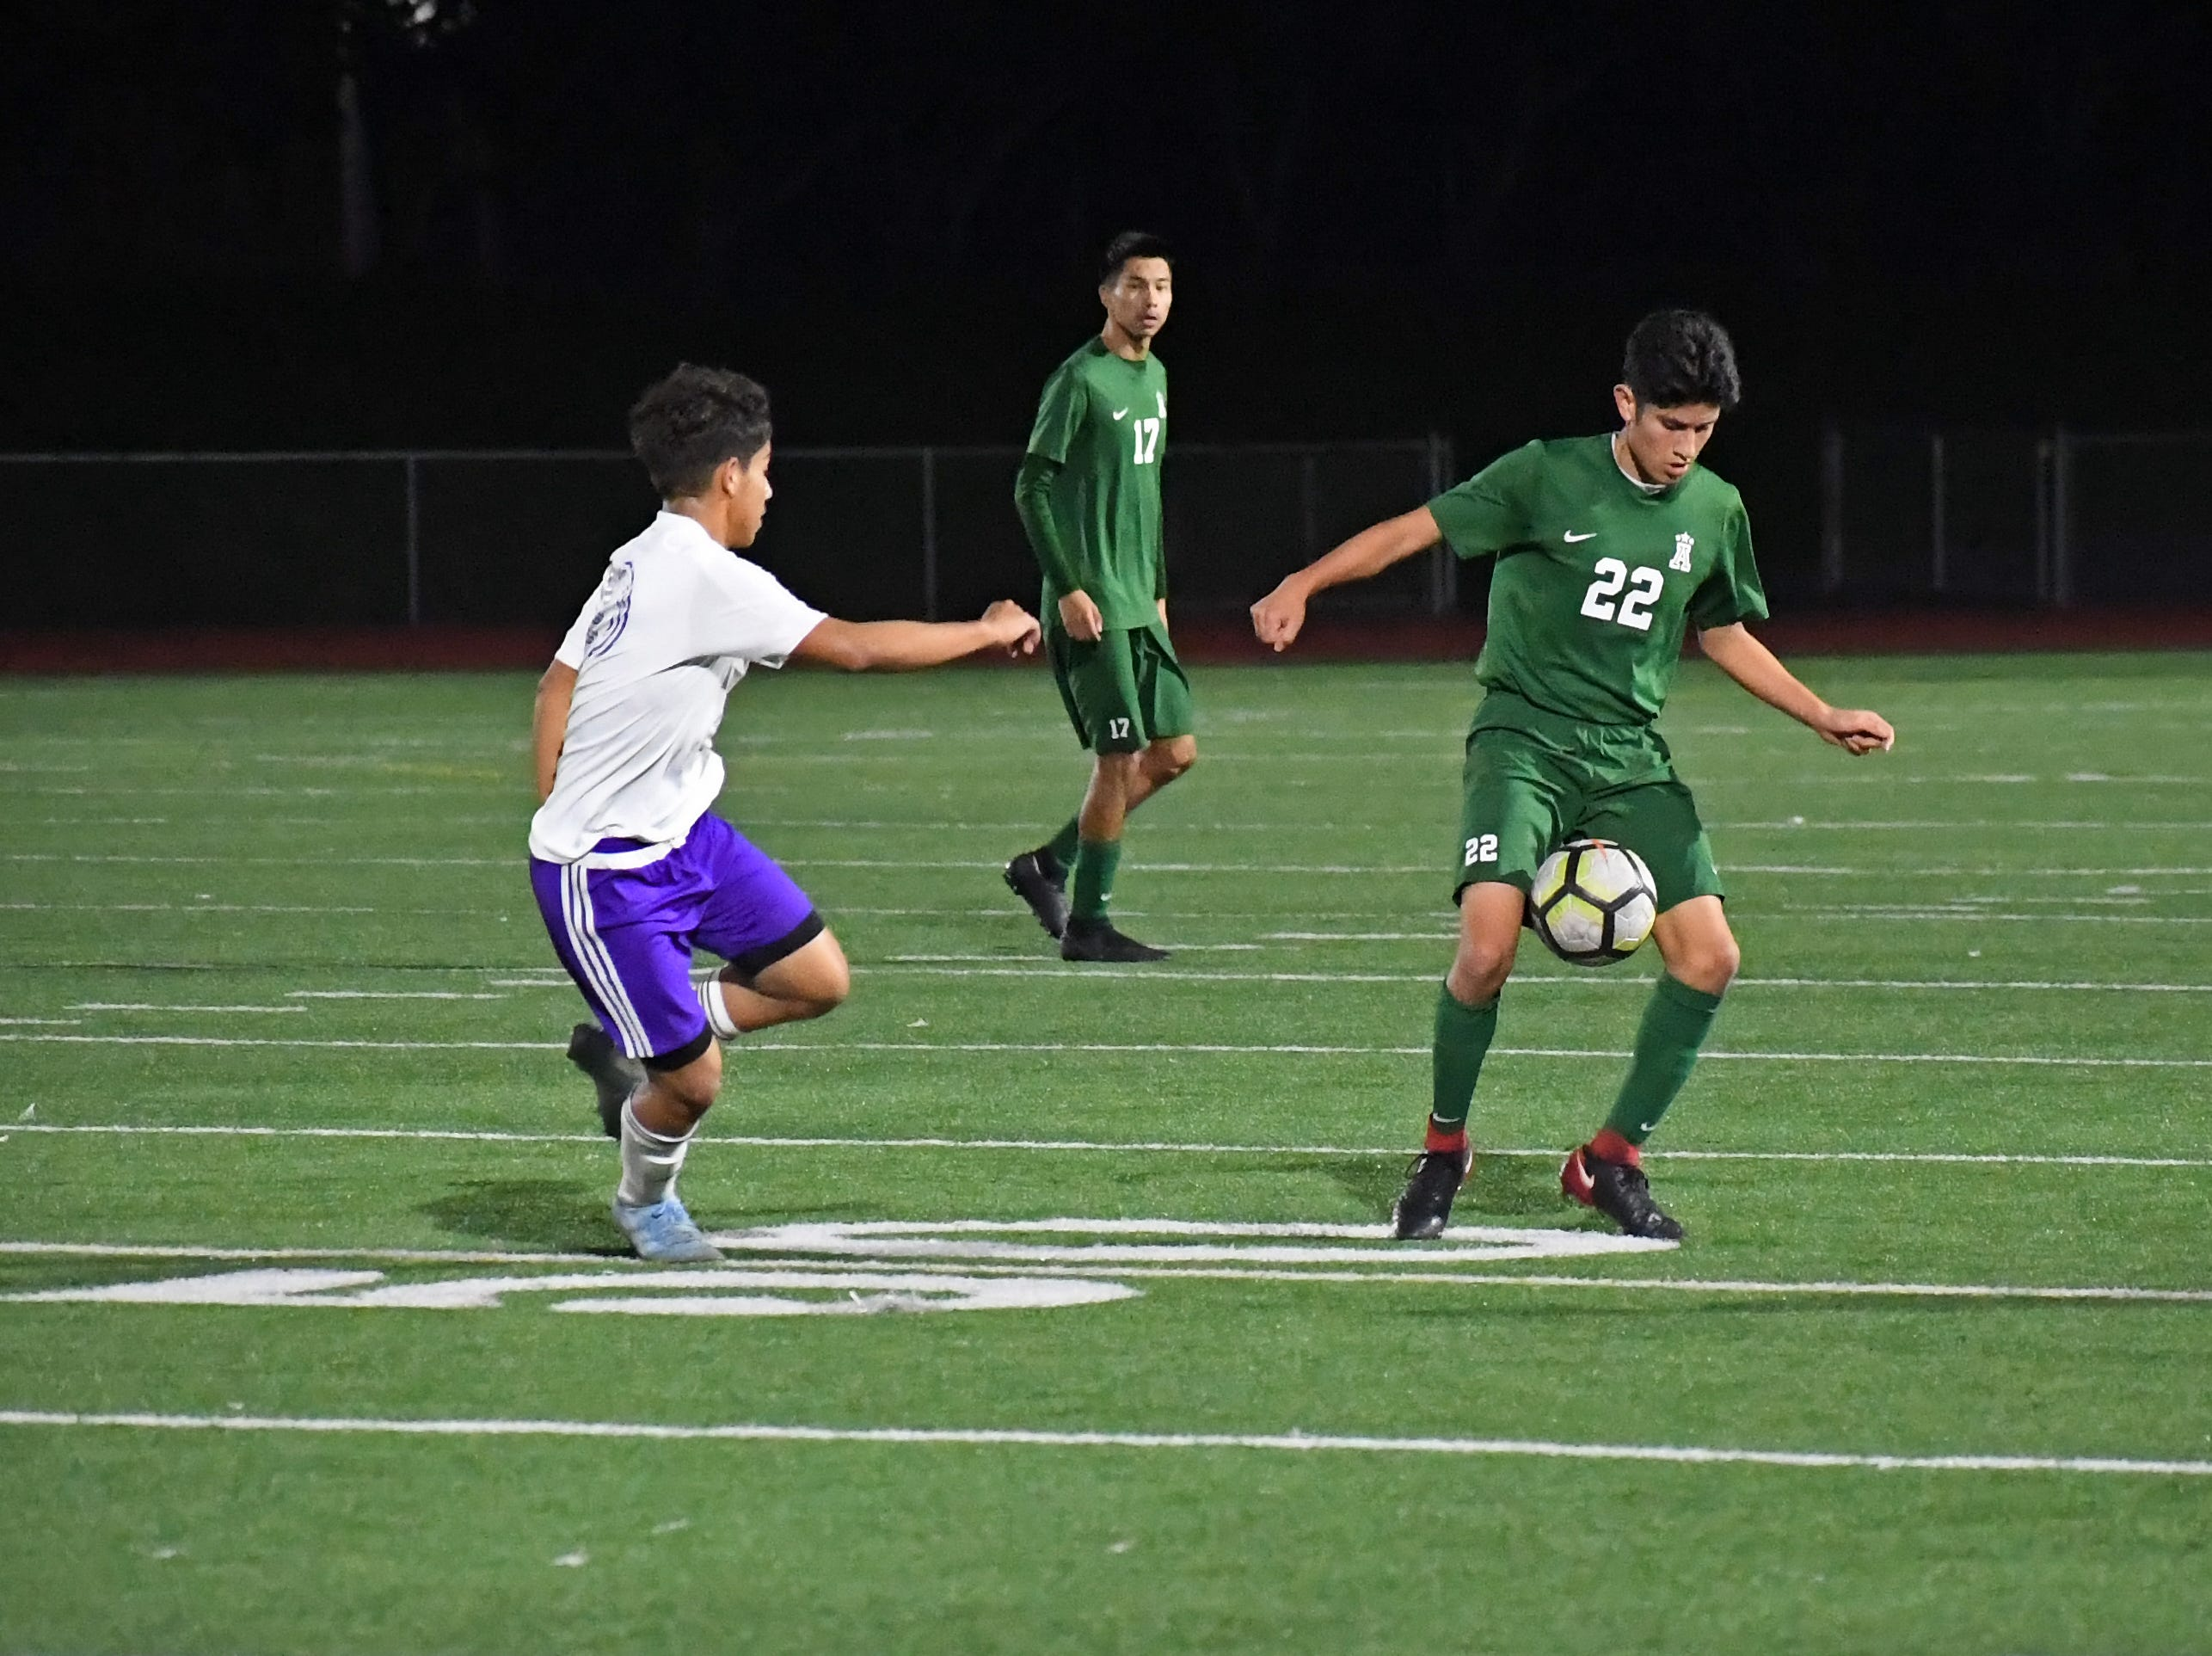 Alisal defender Joel Garcia (22) gathers the ball before passing upfield.